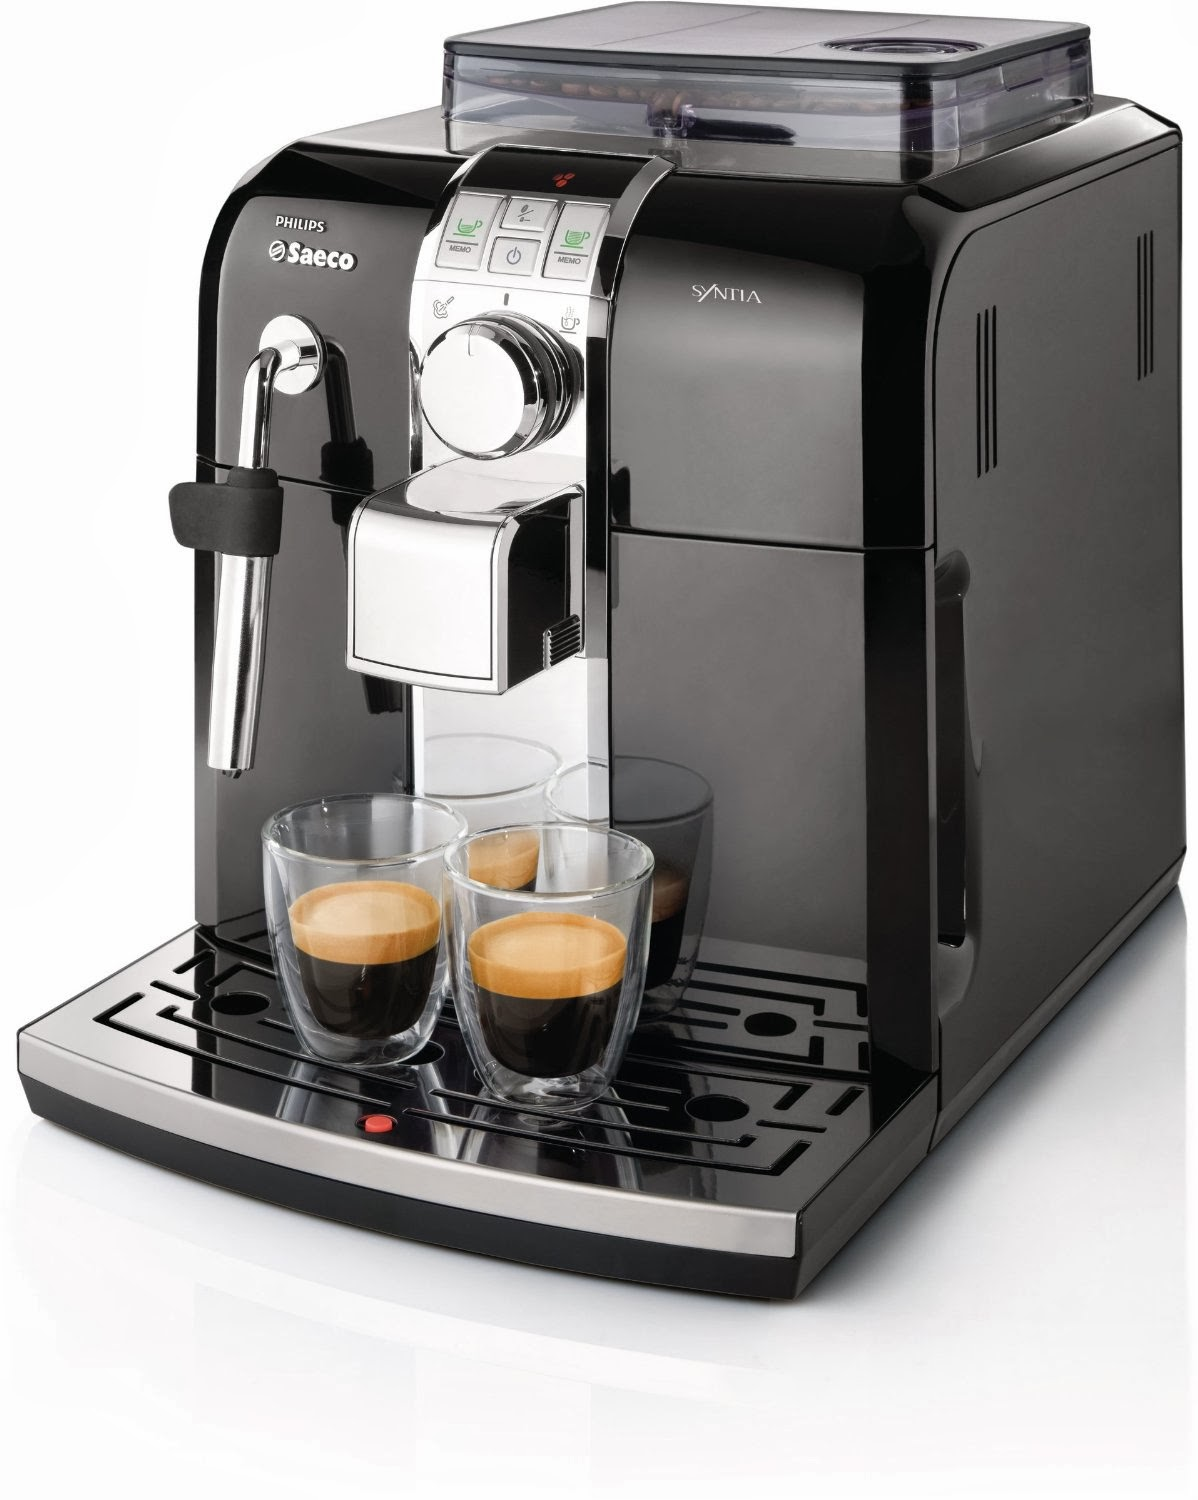 The Philip Saeco Has An Inbuilt Coffee Grinder That Grinds On Demand To Make Freshest Espresso This Machine Is Ideal For Office Workers Who